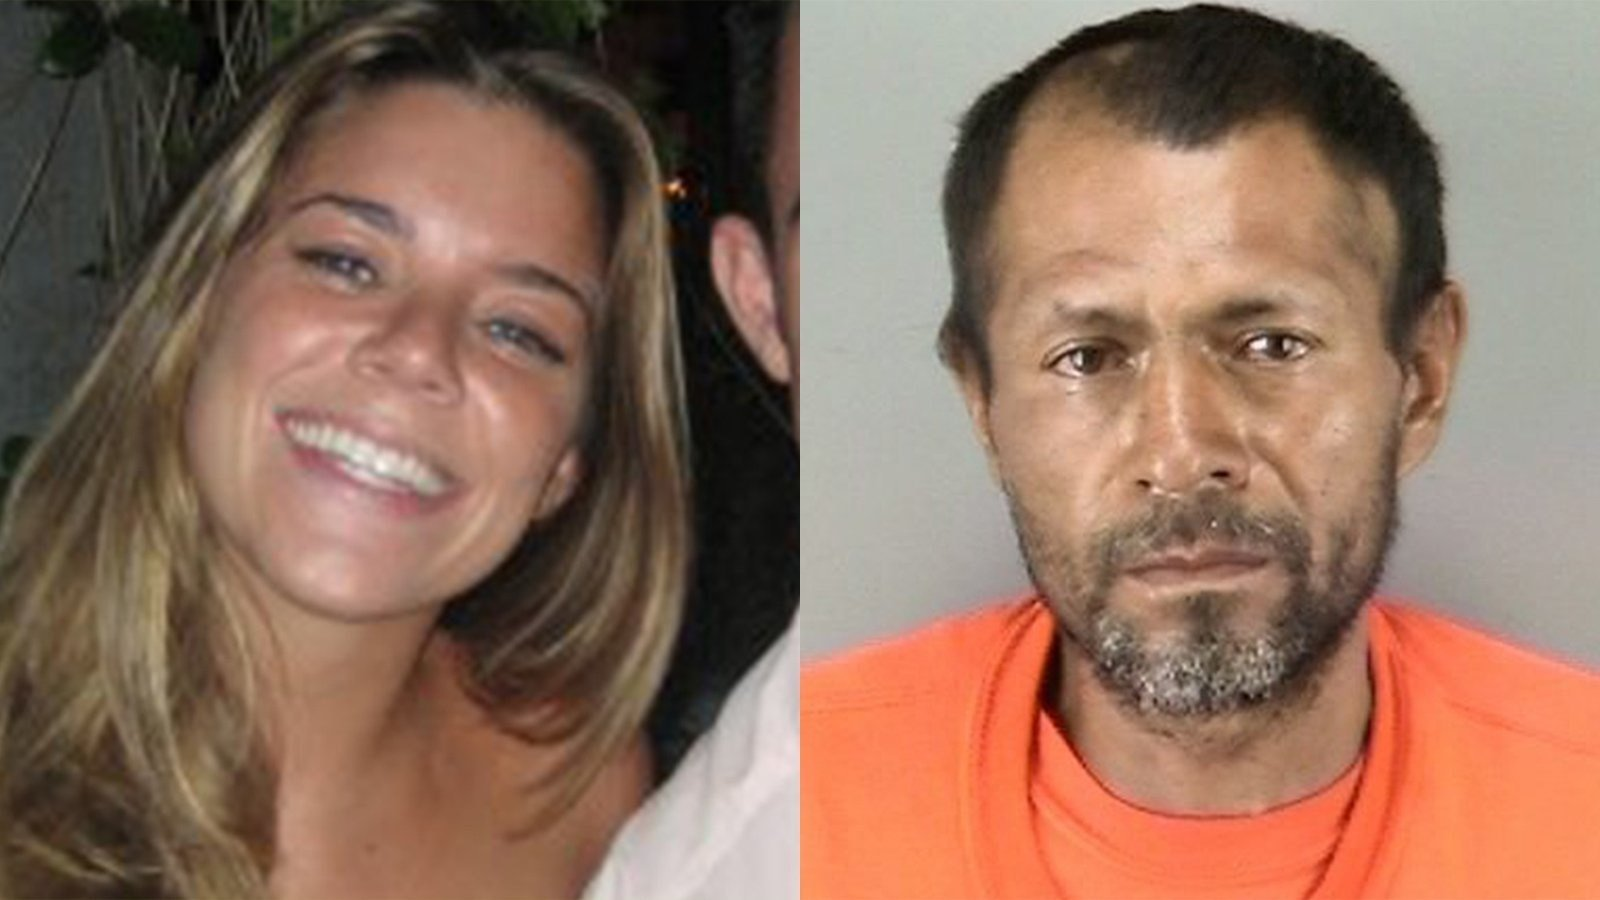 Kate Steinle, 32 was killed in July 2015. Jose Ines Garcia Zarate was deported from the US fives times before the shooting authorities say